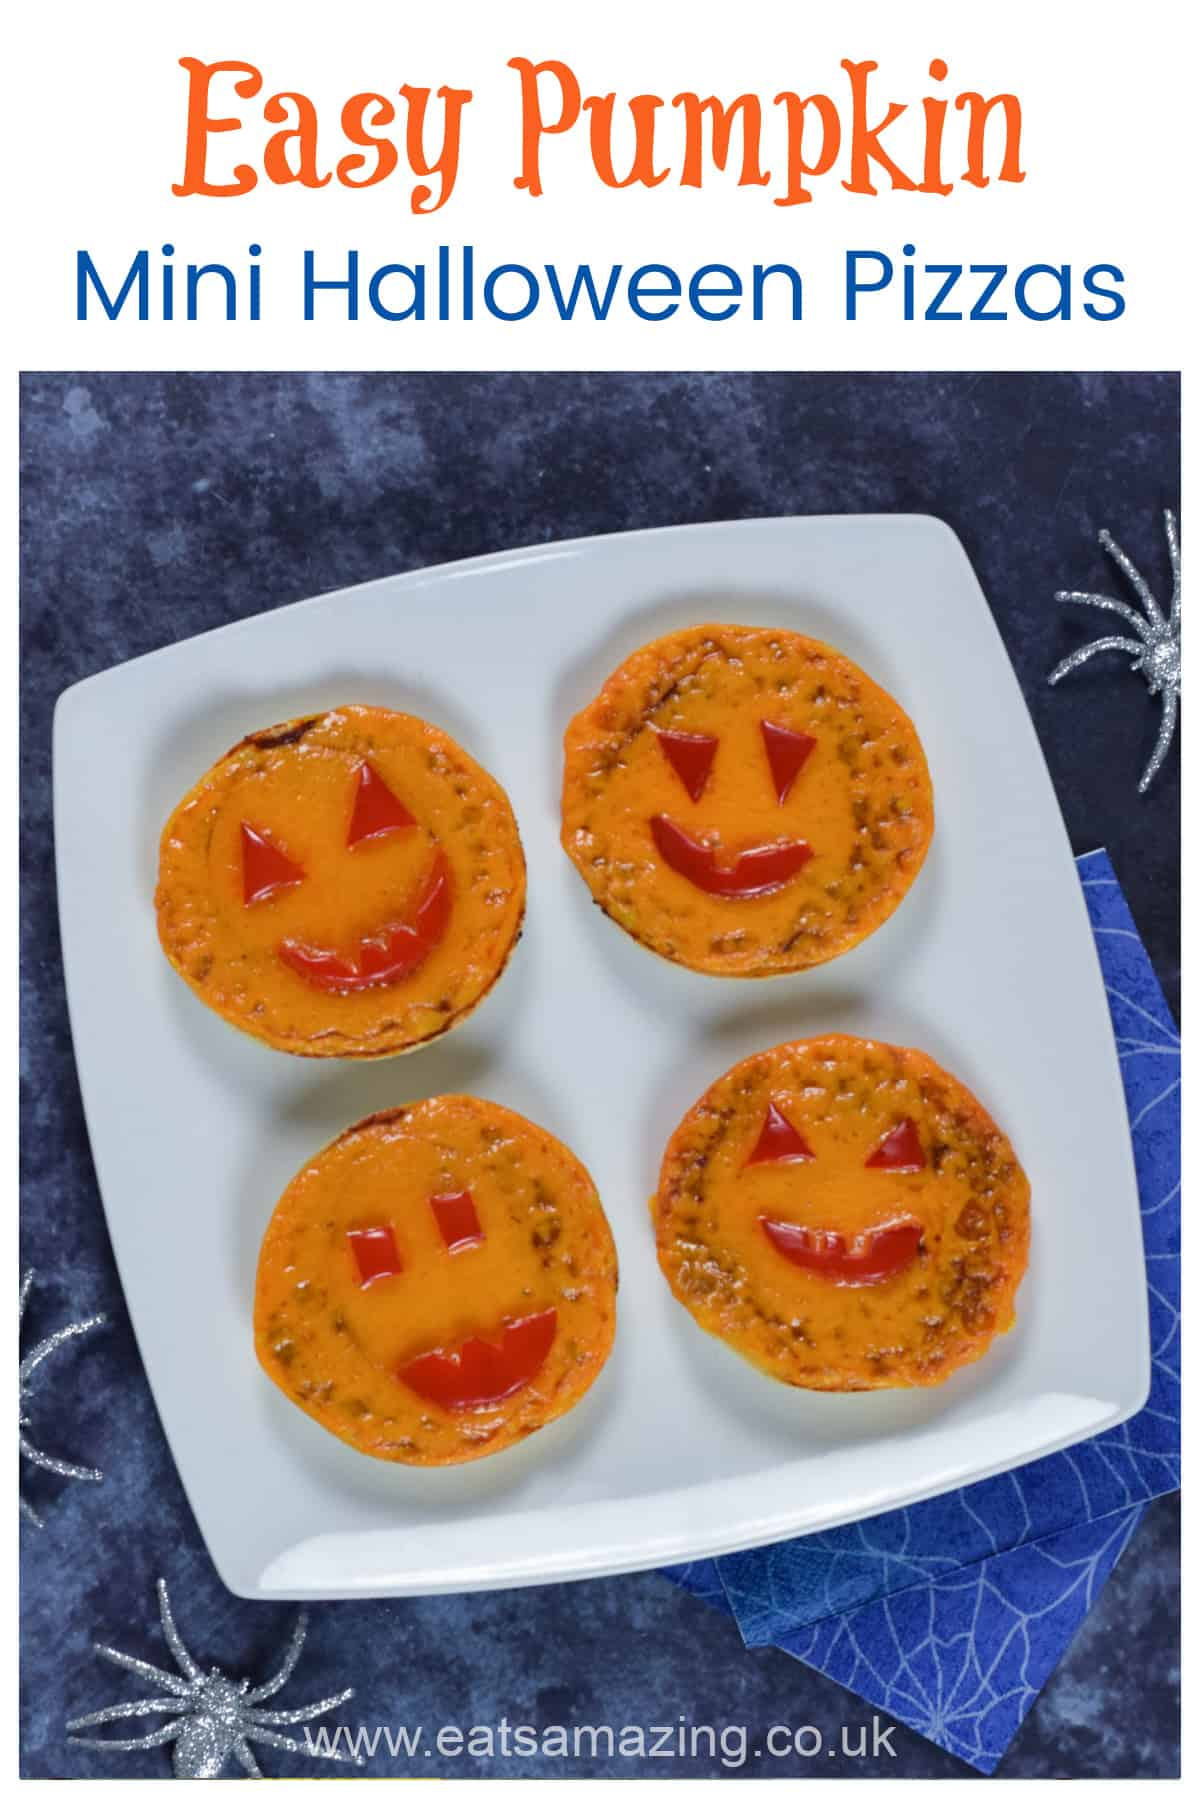 Mini Halloween Pumpkin Pizzas recipe - quick and easy fun Halloween recipe for kids